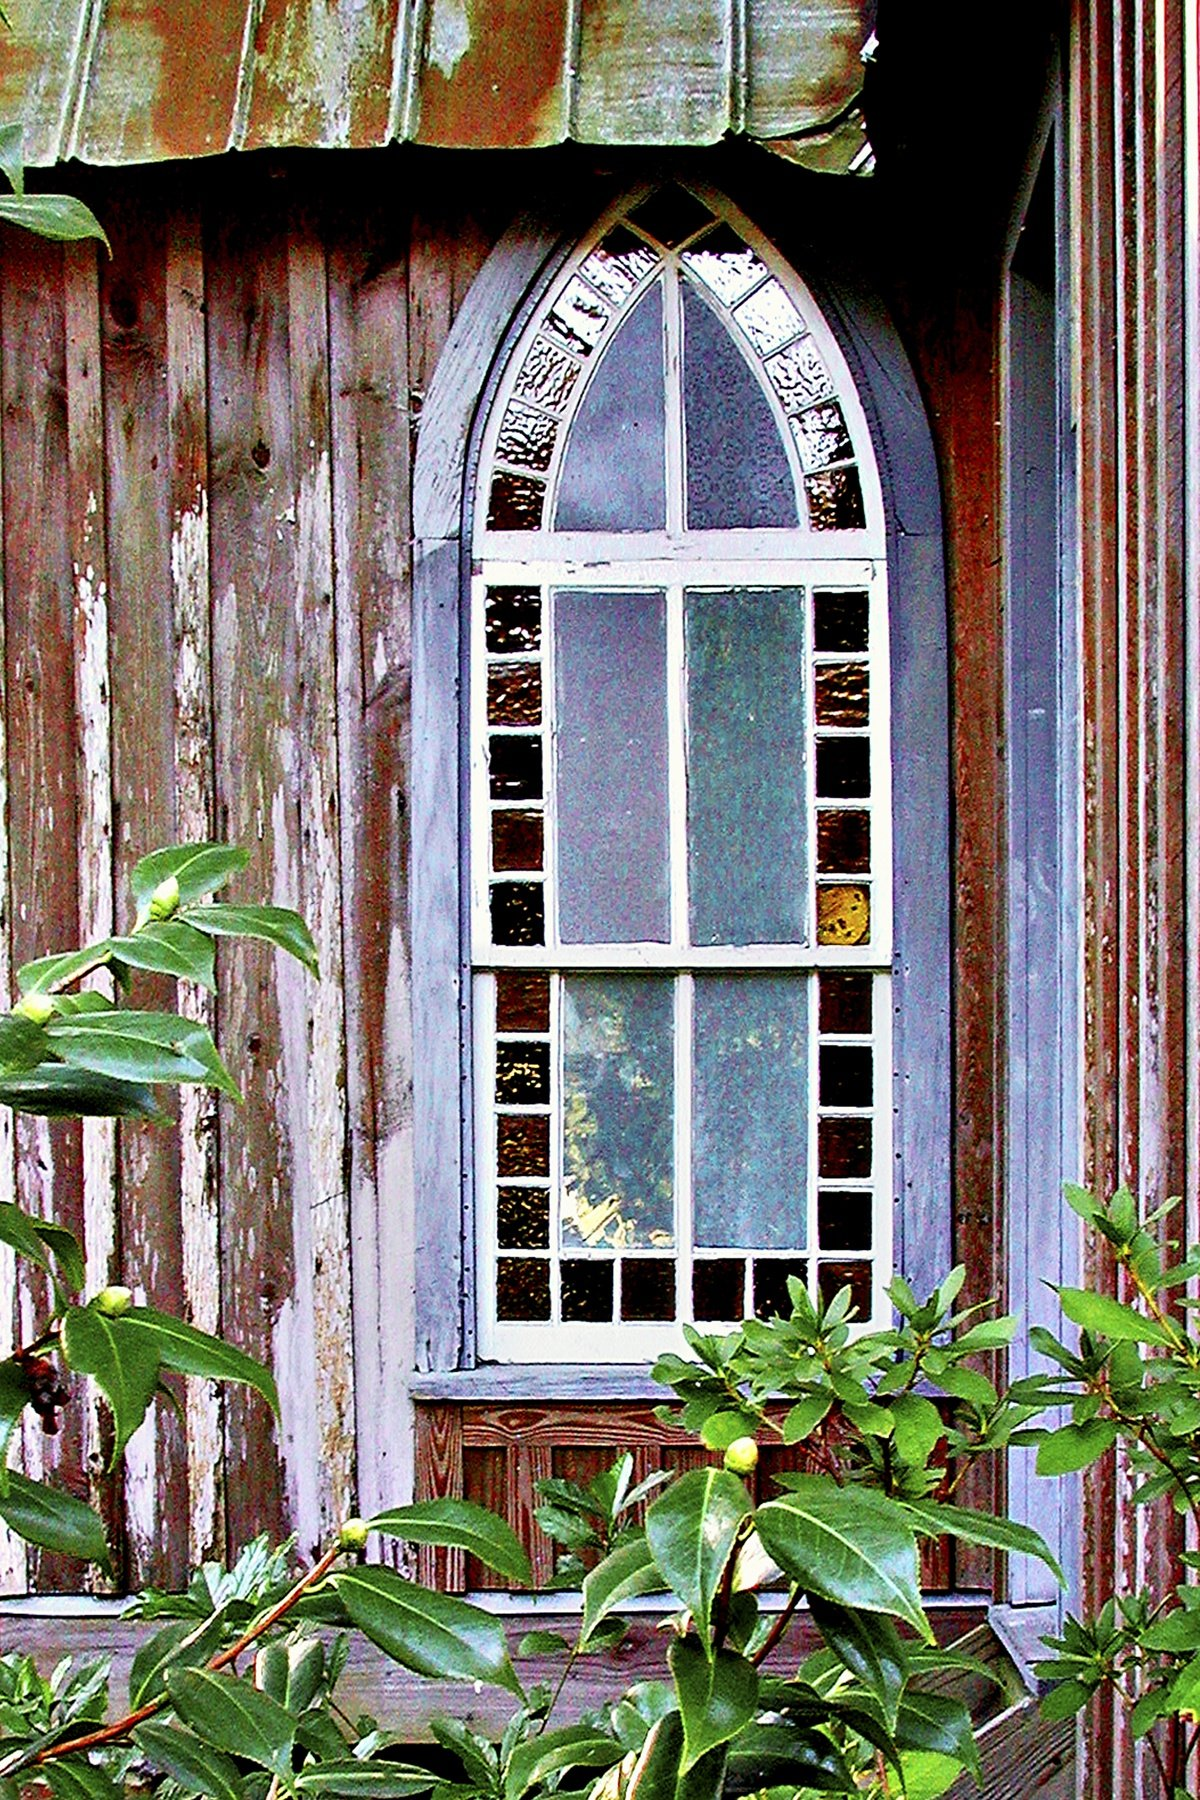 CHAPEL WINDOW - This window is in a parsonage building at a little church in a small coastal fishing town in South Carolina. I remember there were really a lot of dogs in that town.